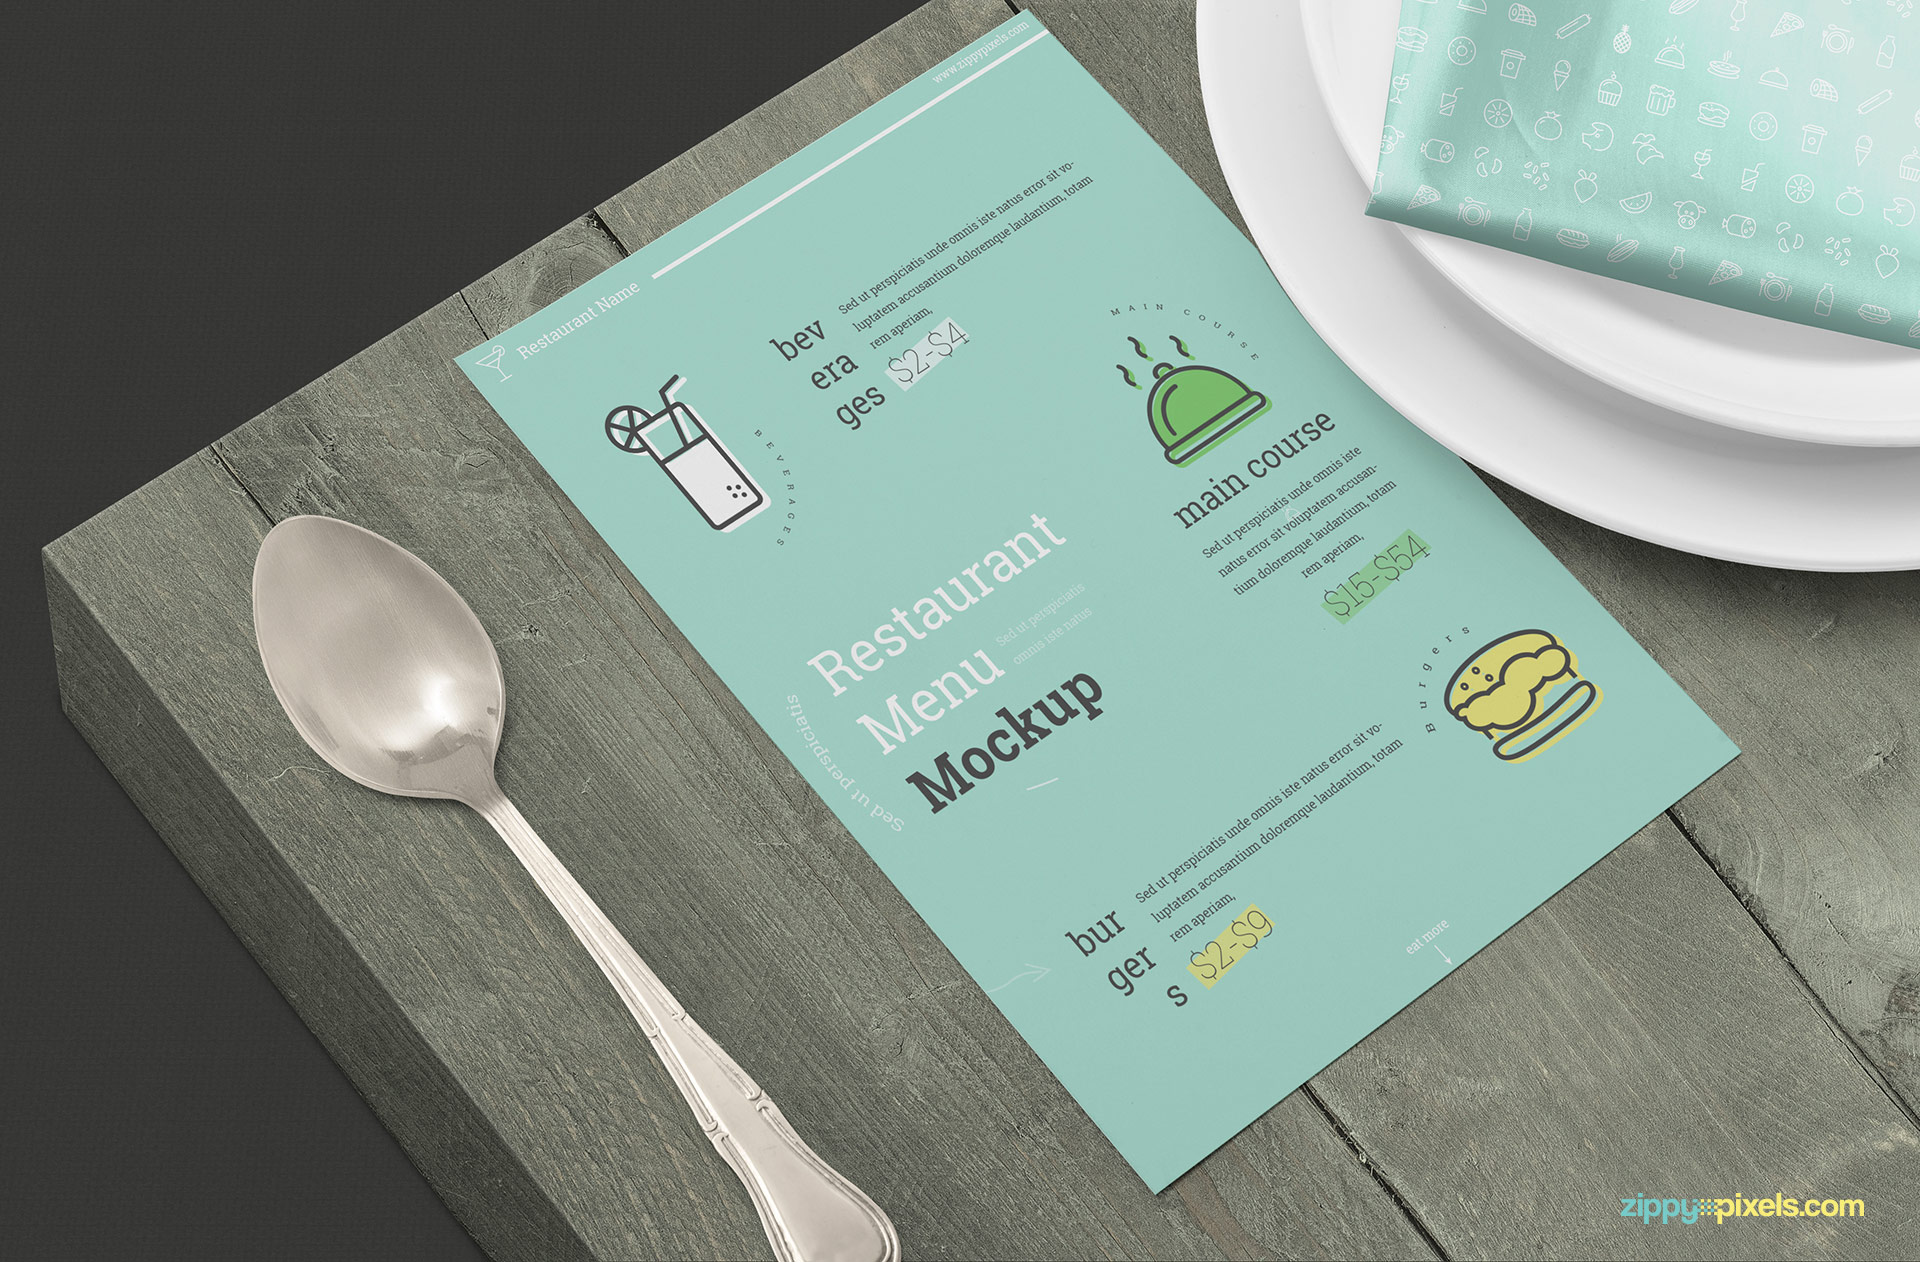 Menu mockup scene with a wooden background.